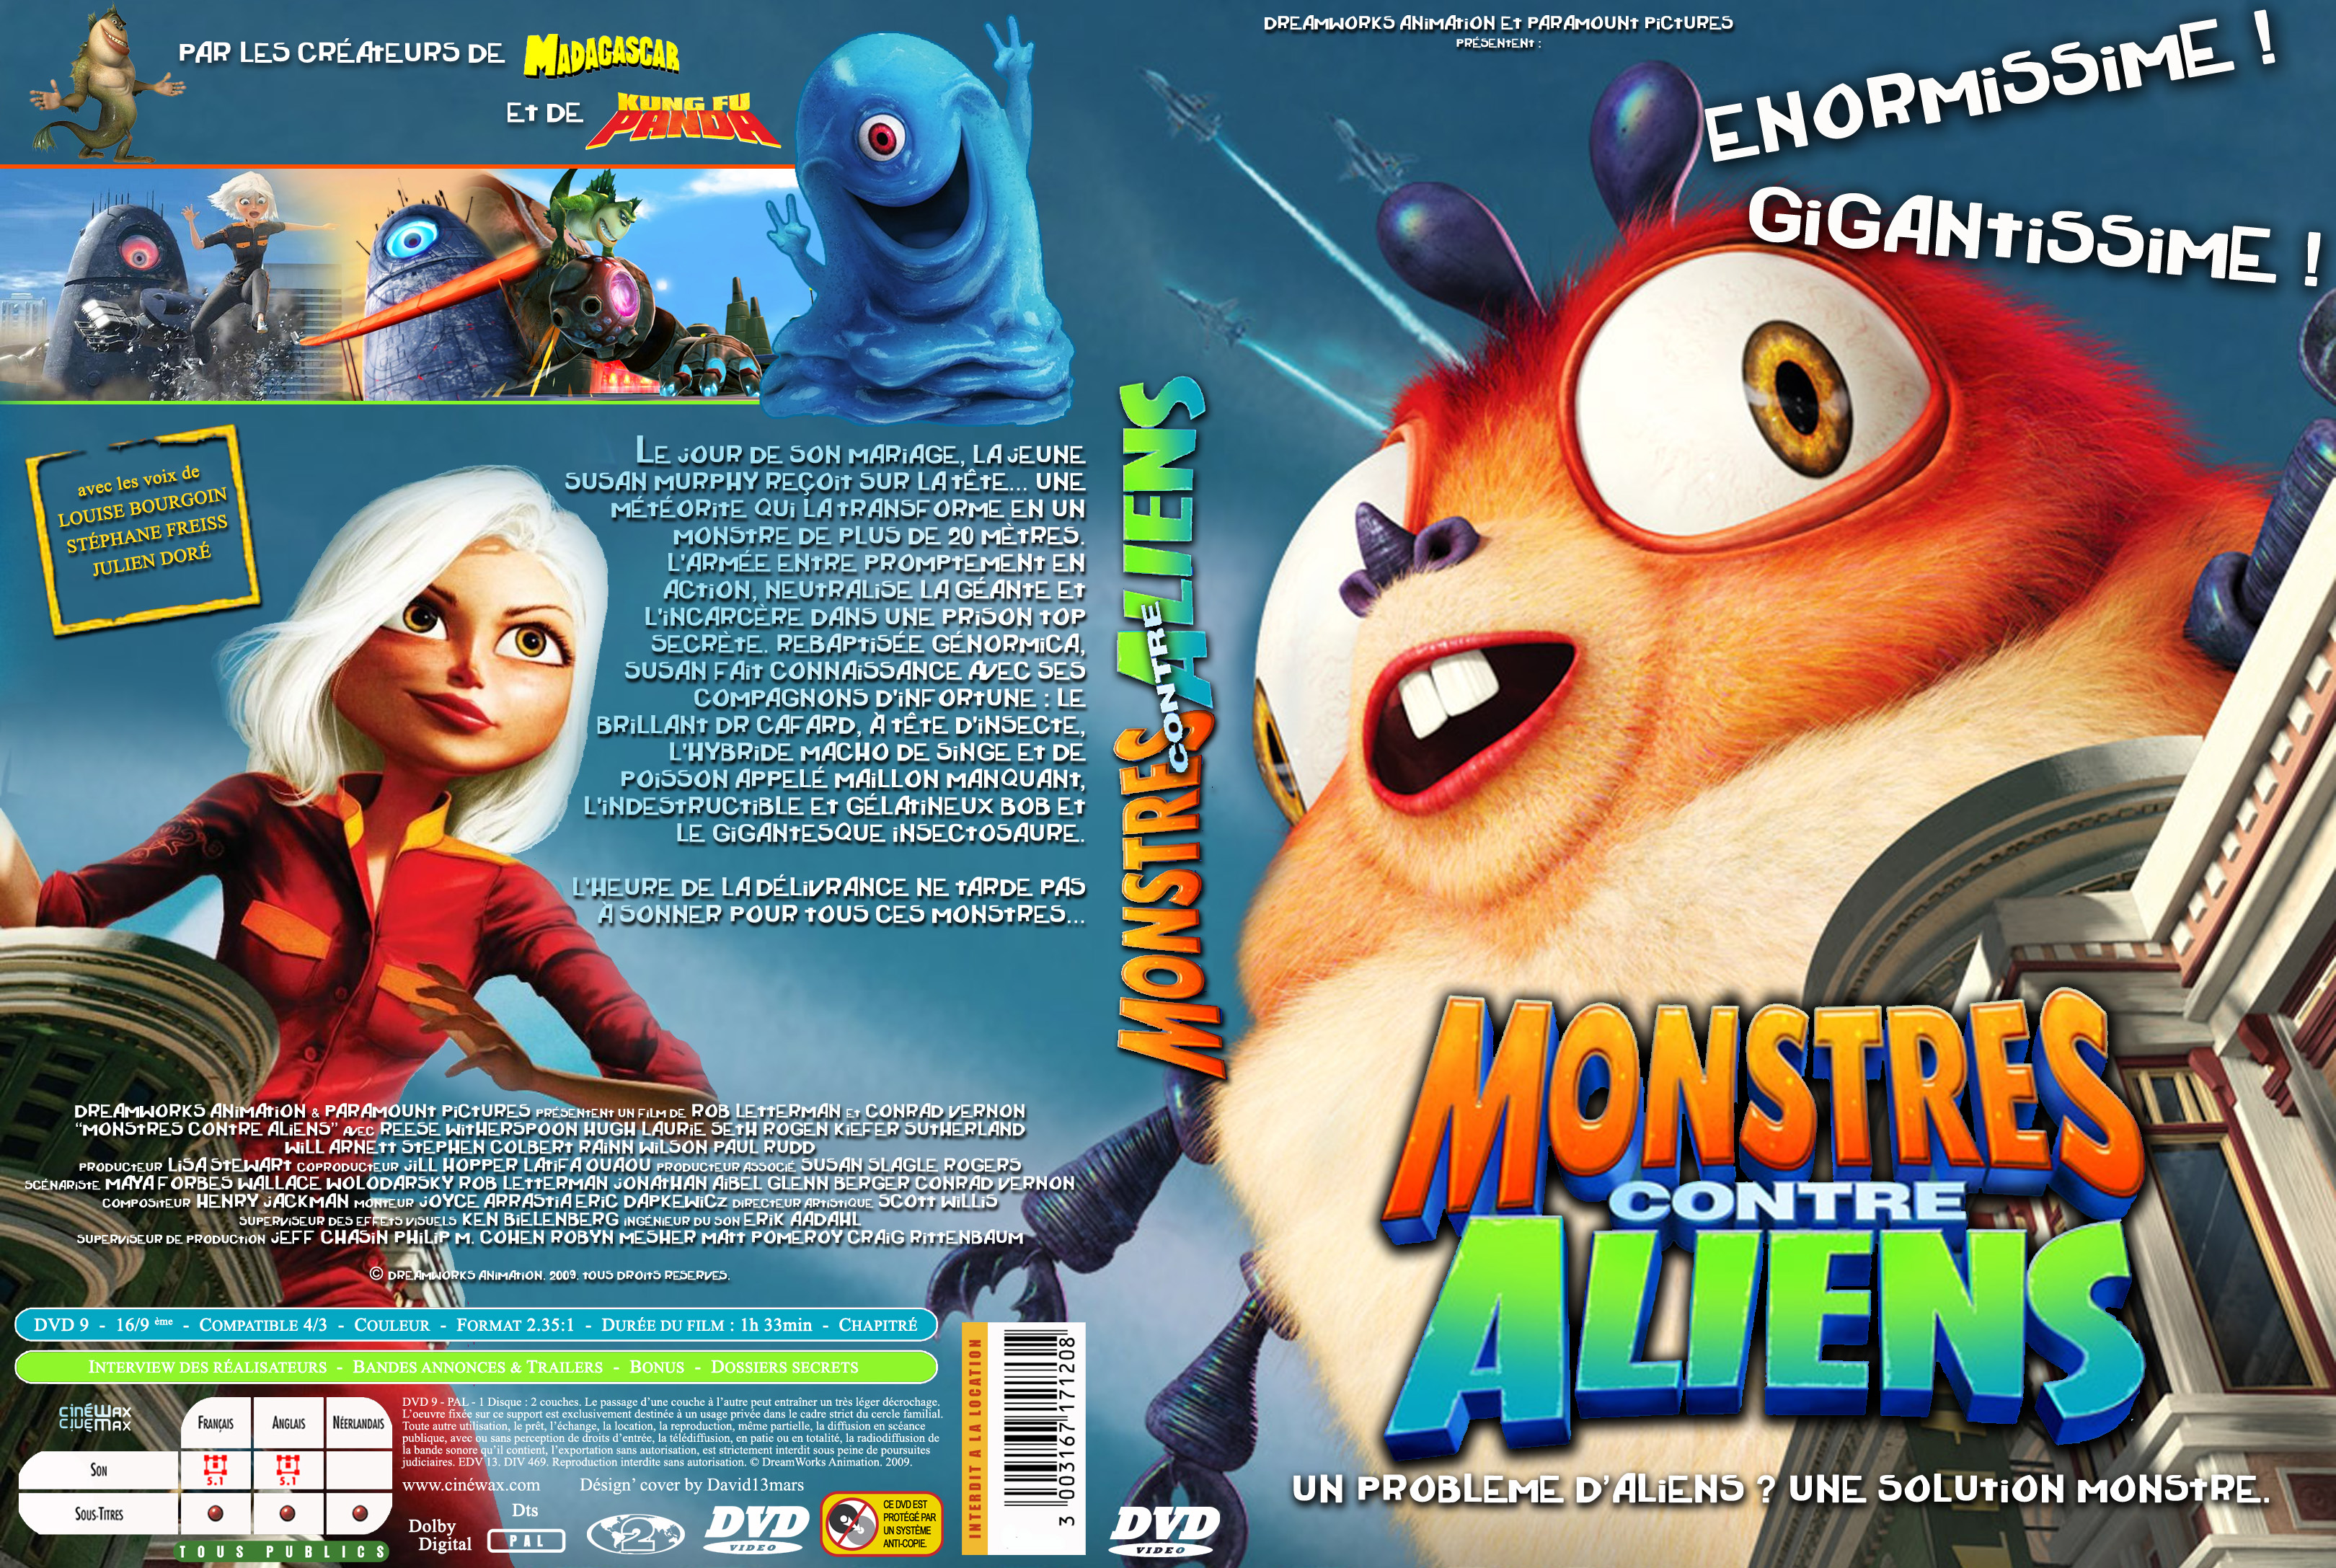 Monstre vs alien suzanne xxx xxx images